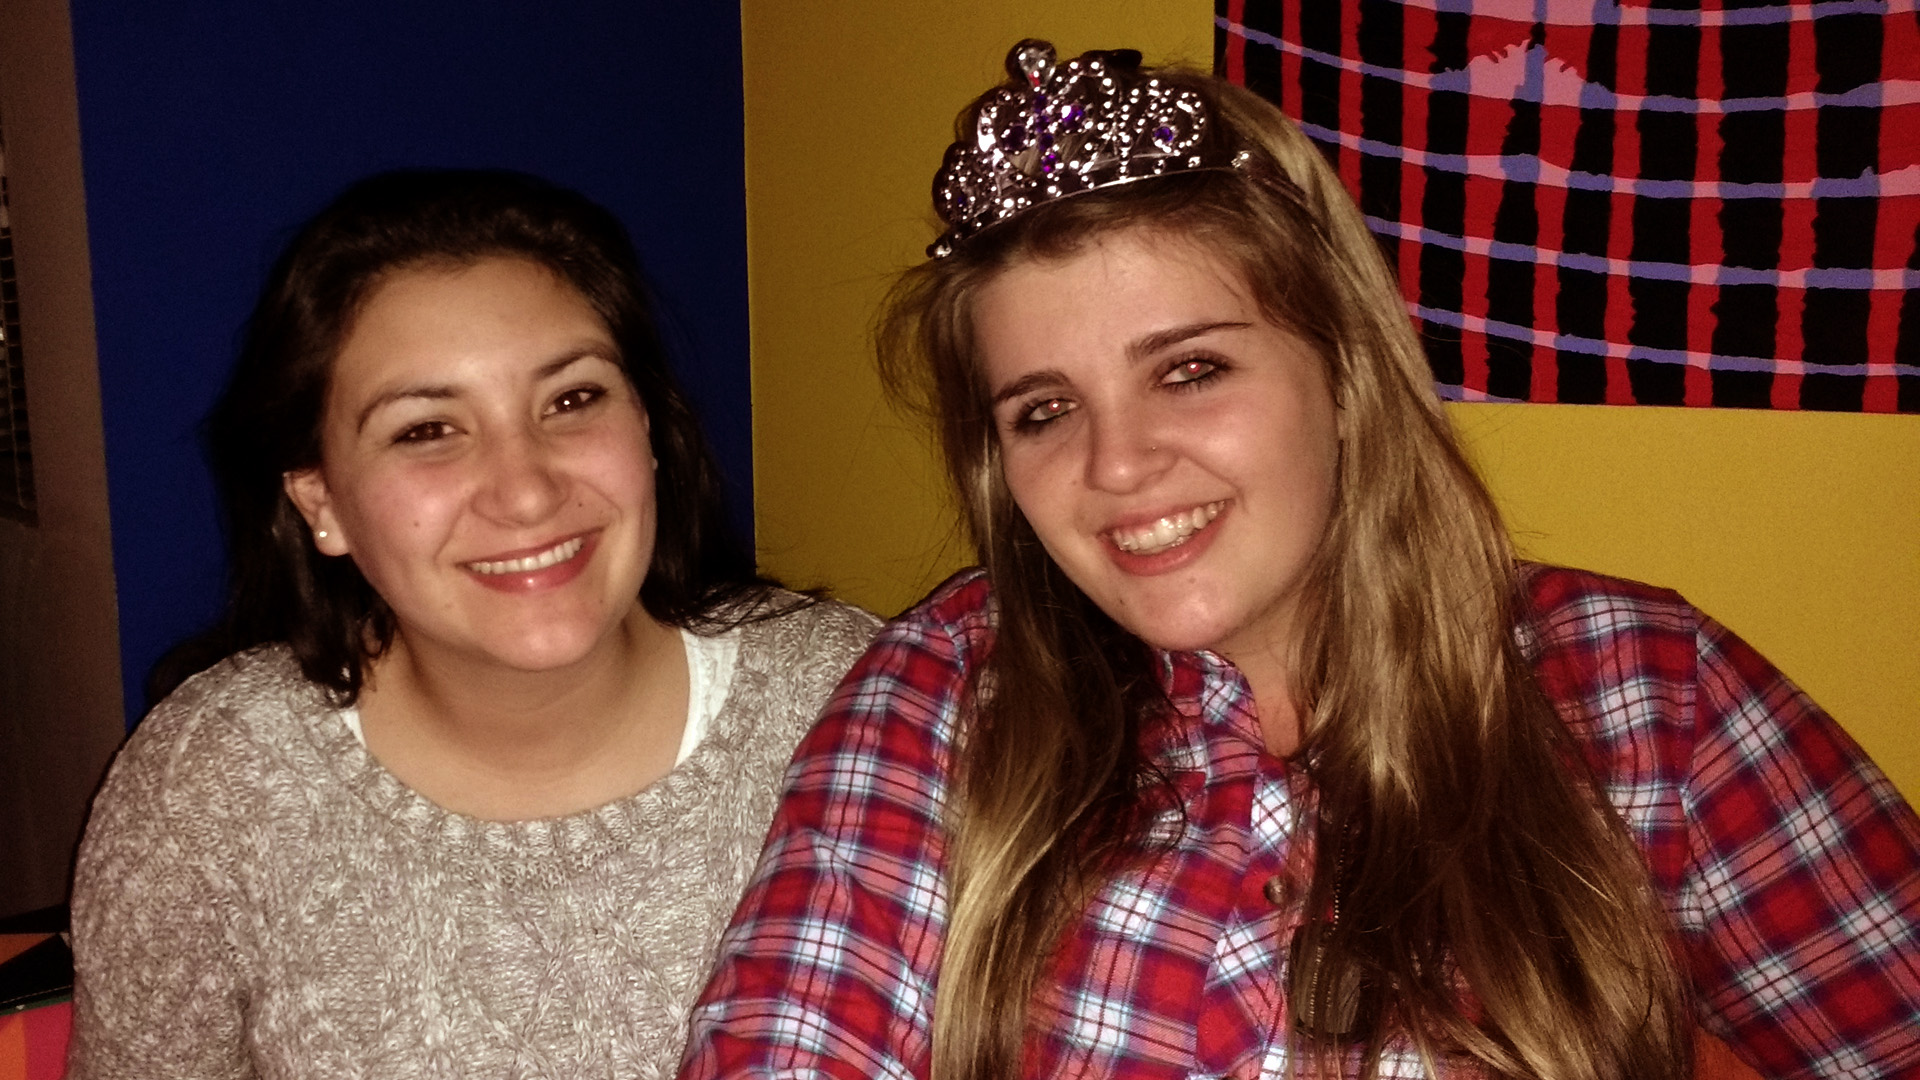 Celeste and Daleen sitting in the living room. Daleen wears a tiara.